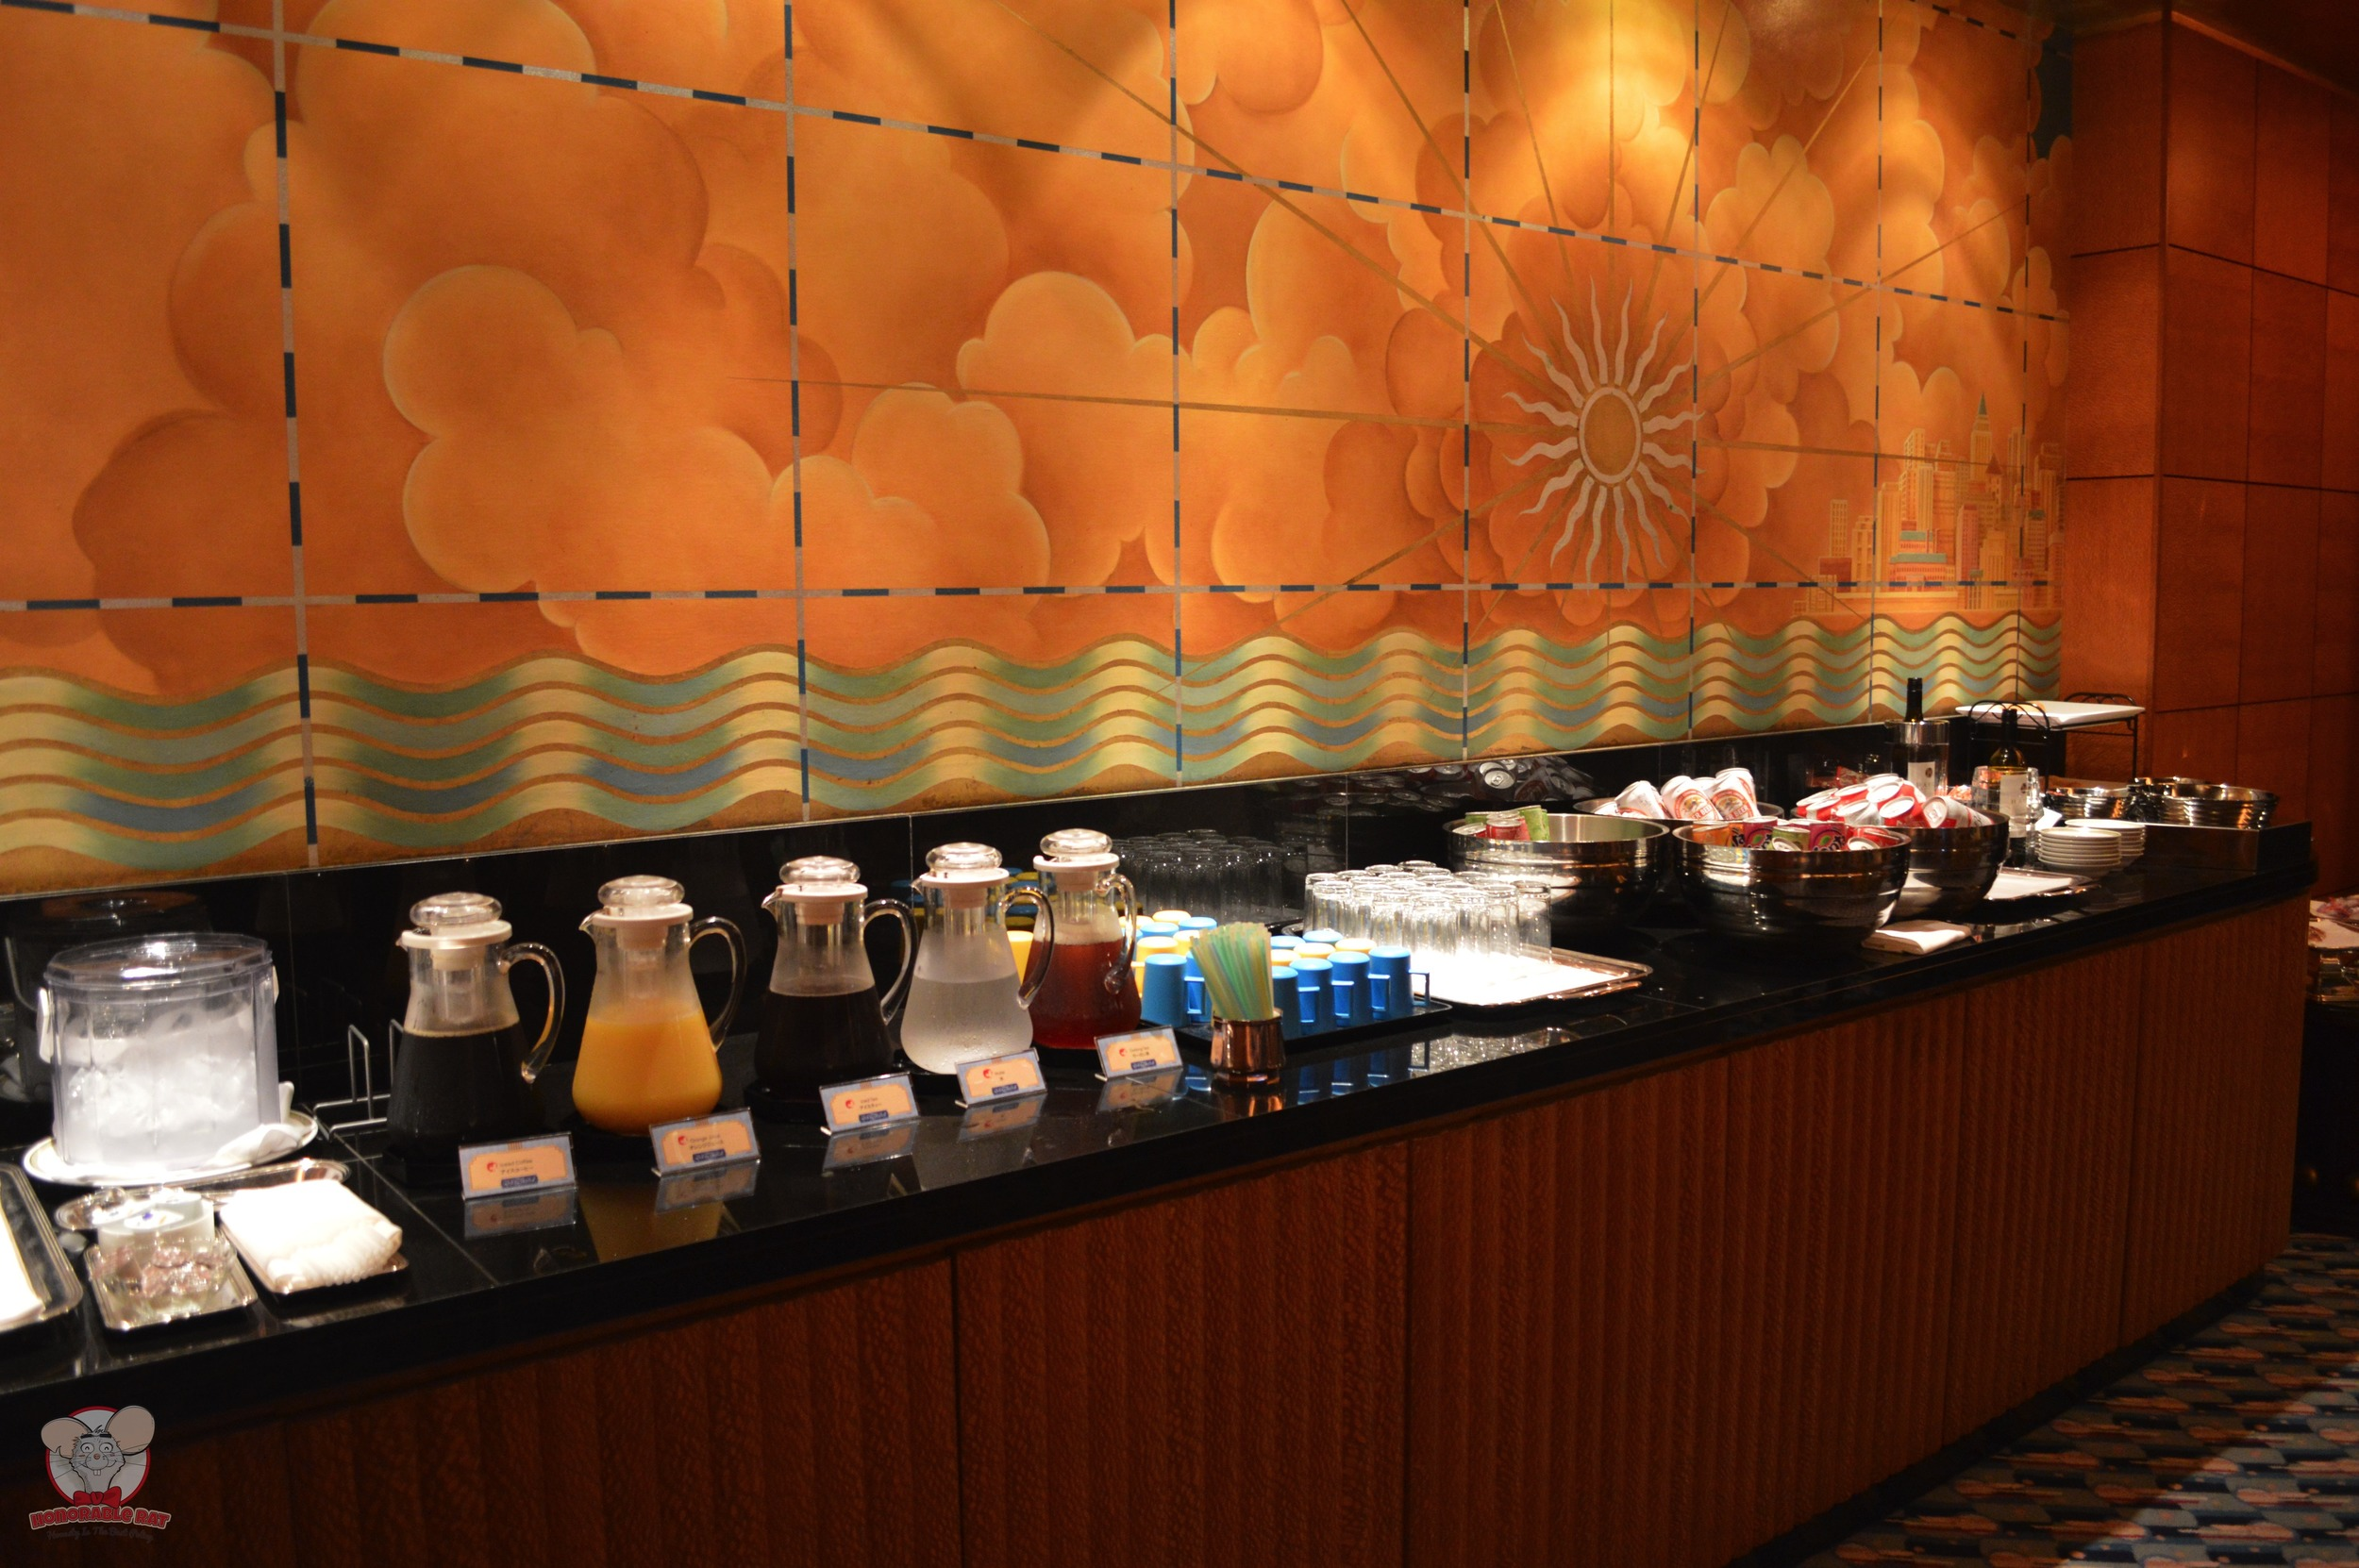 Complimentary drinks and snacks